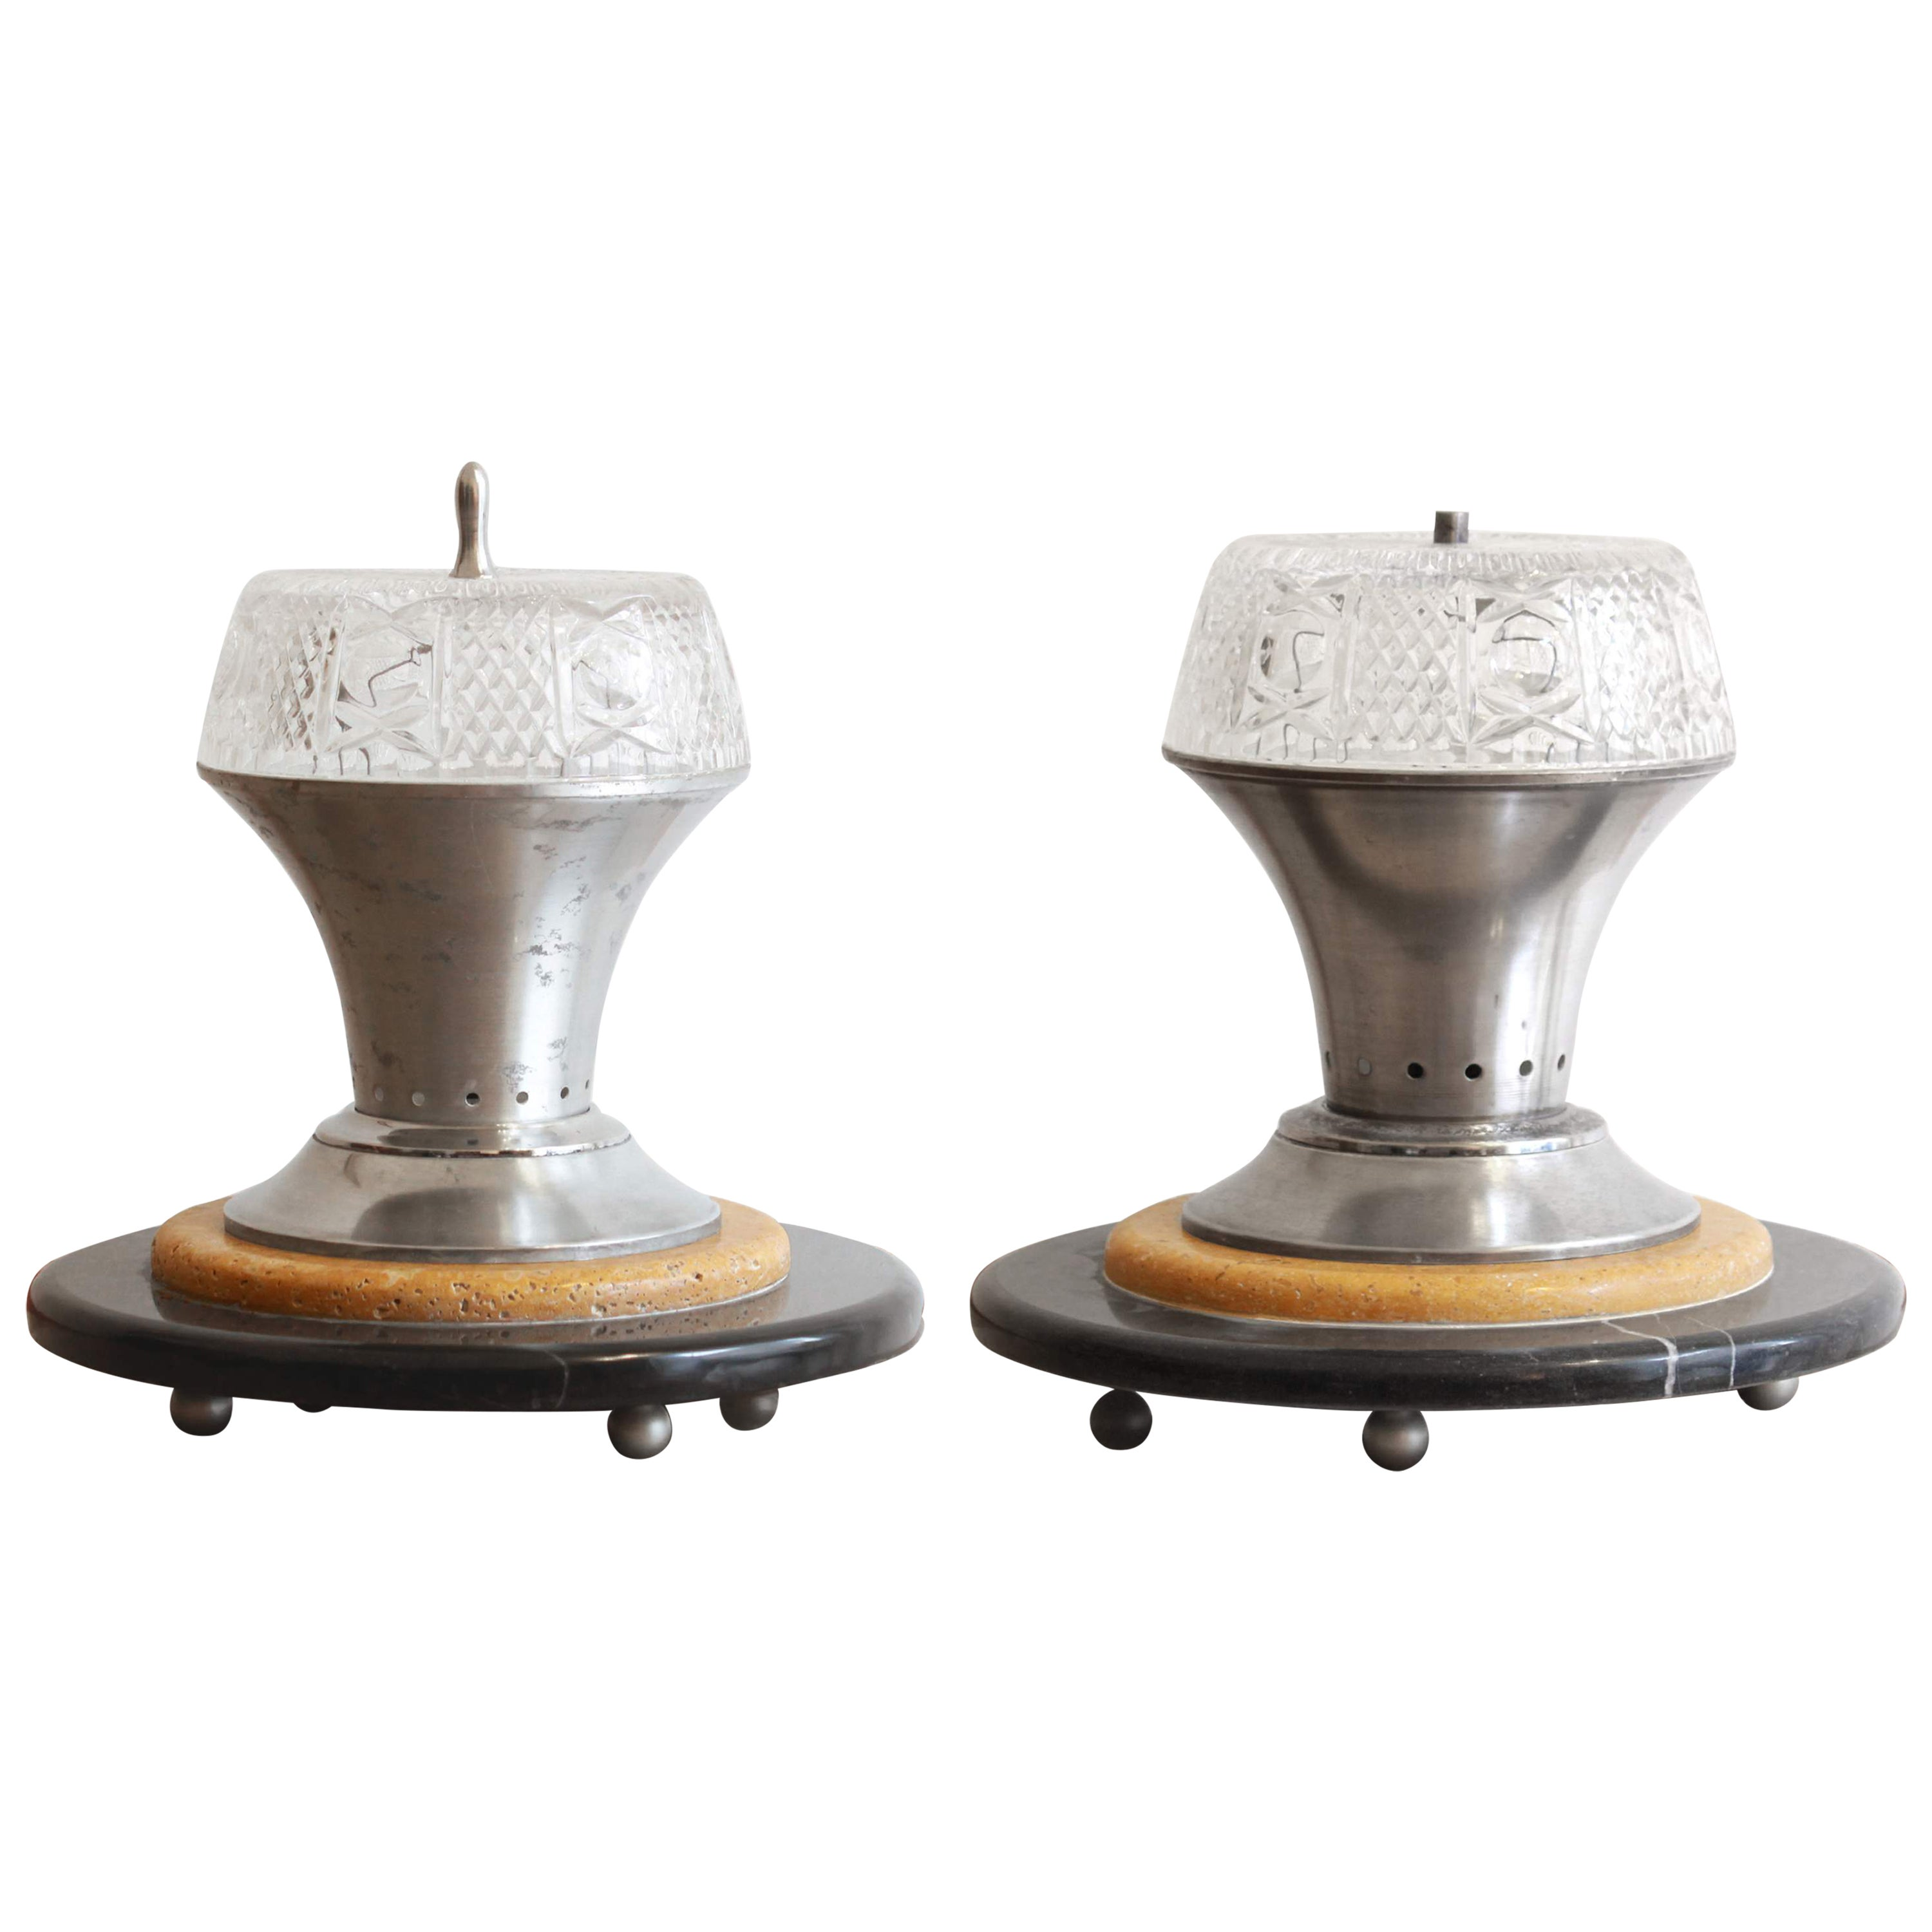 Two Design Marble Table Lamps, VLabdesign Collection